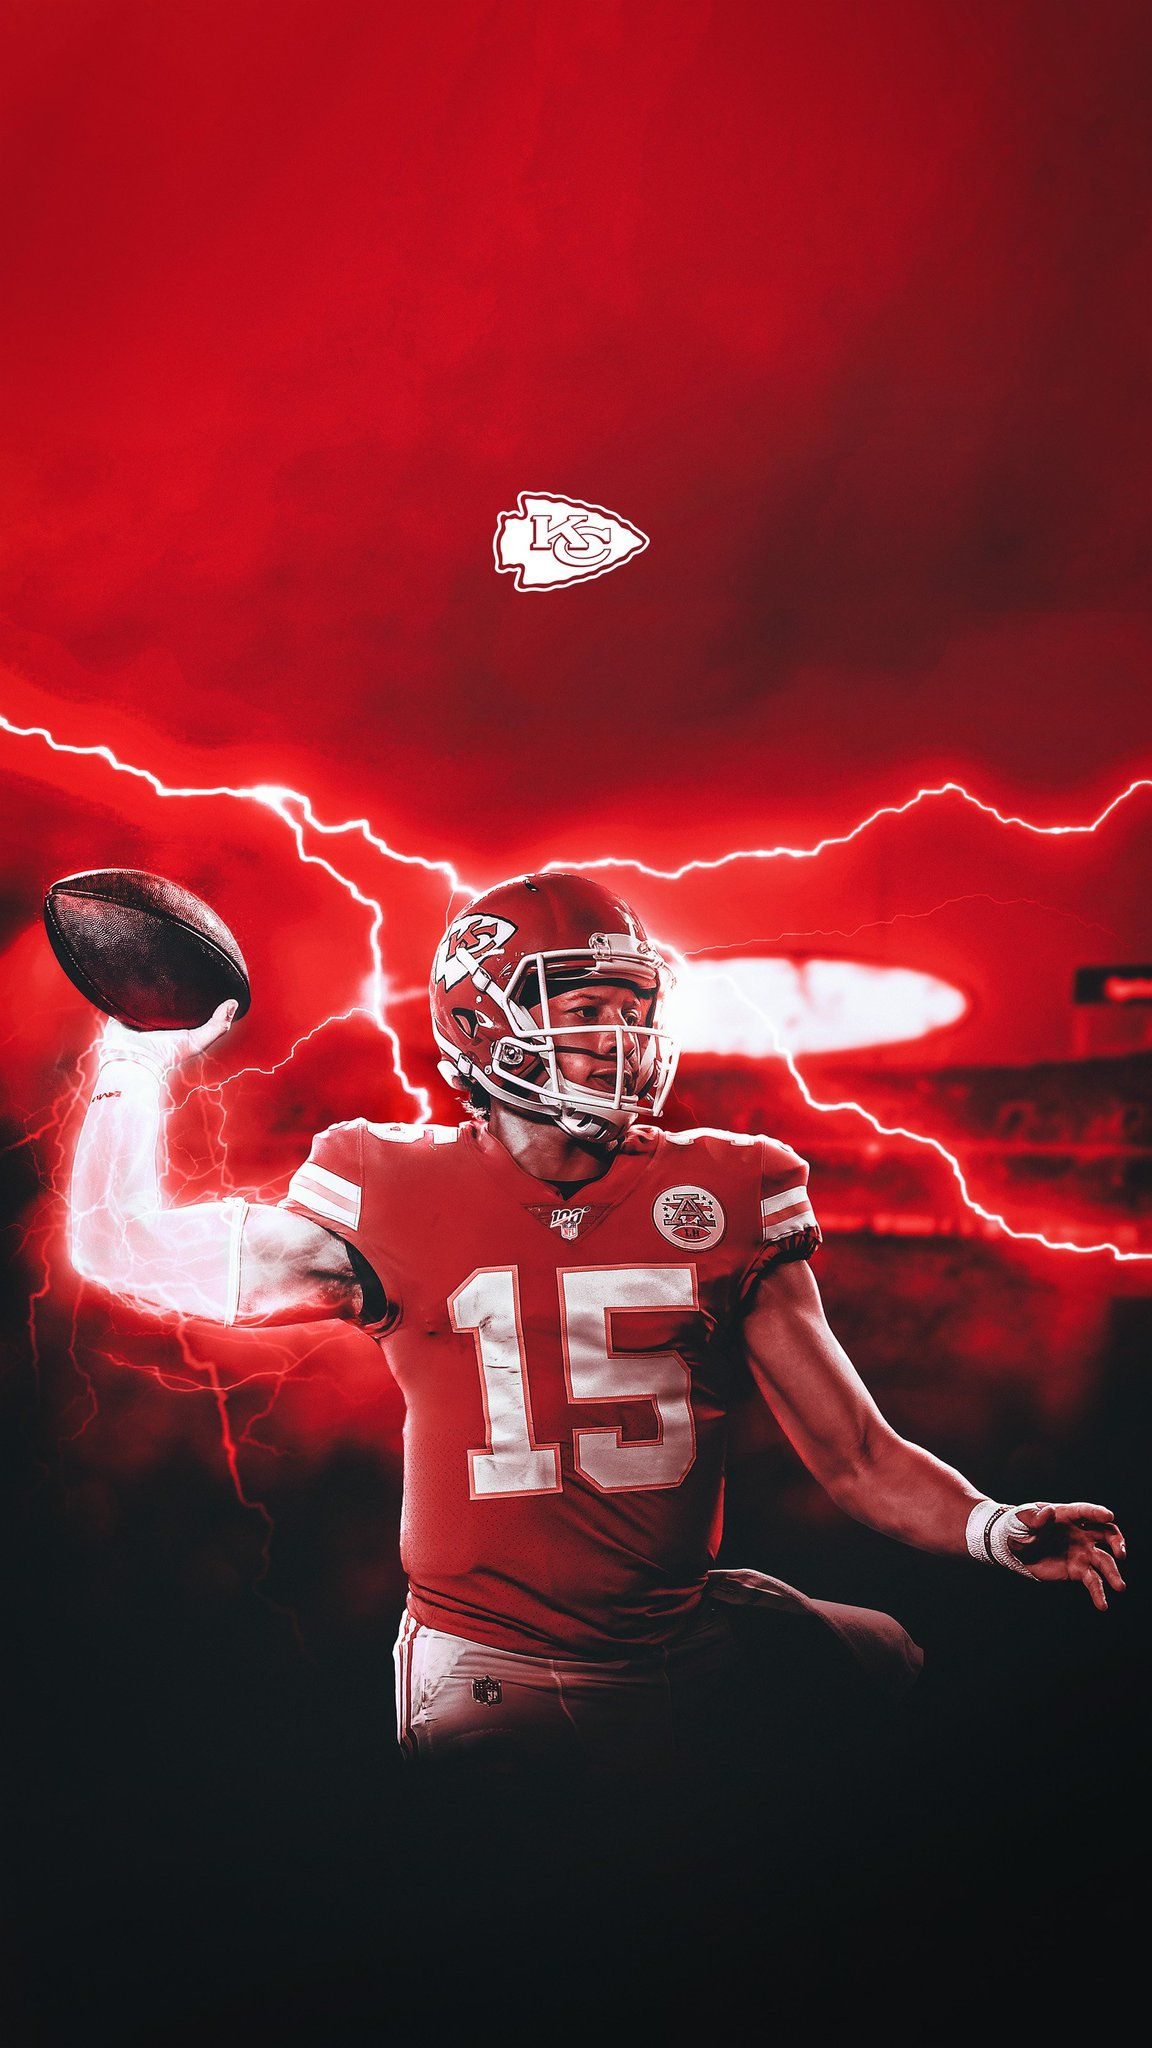 Chiefs Mahomes Wallpapers Nfl Chiefskingdom 15 In 2020 Kansas City Nfl Chiefs Wallpaper Kansas City Chiefs Football